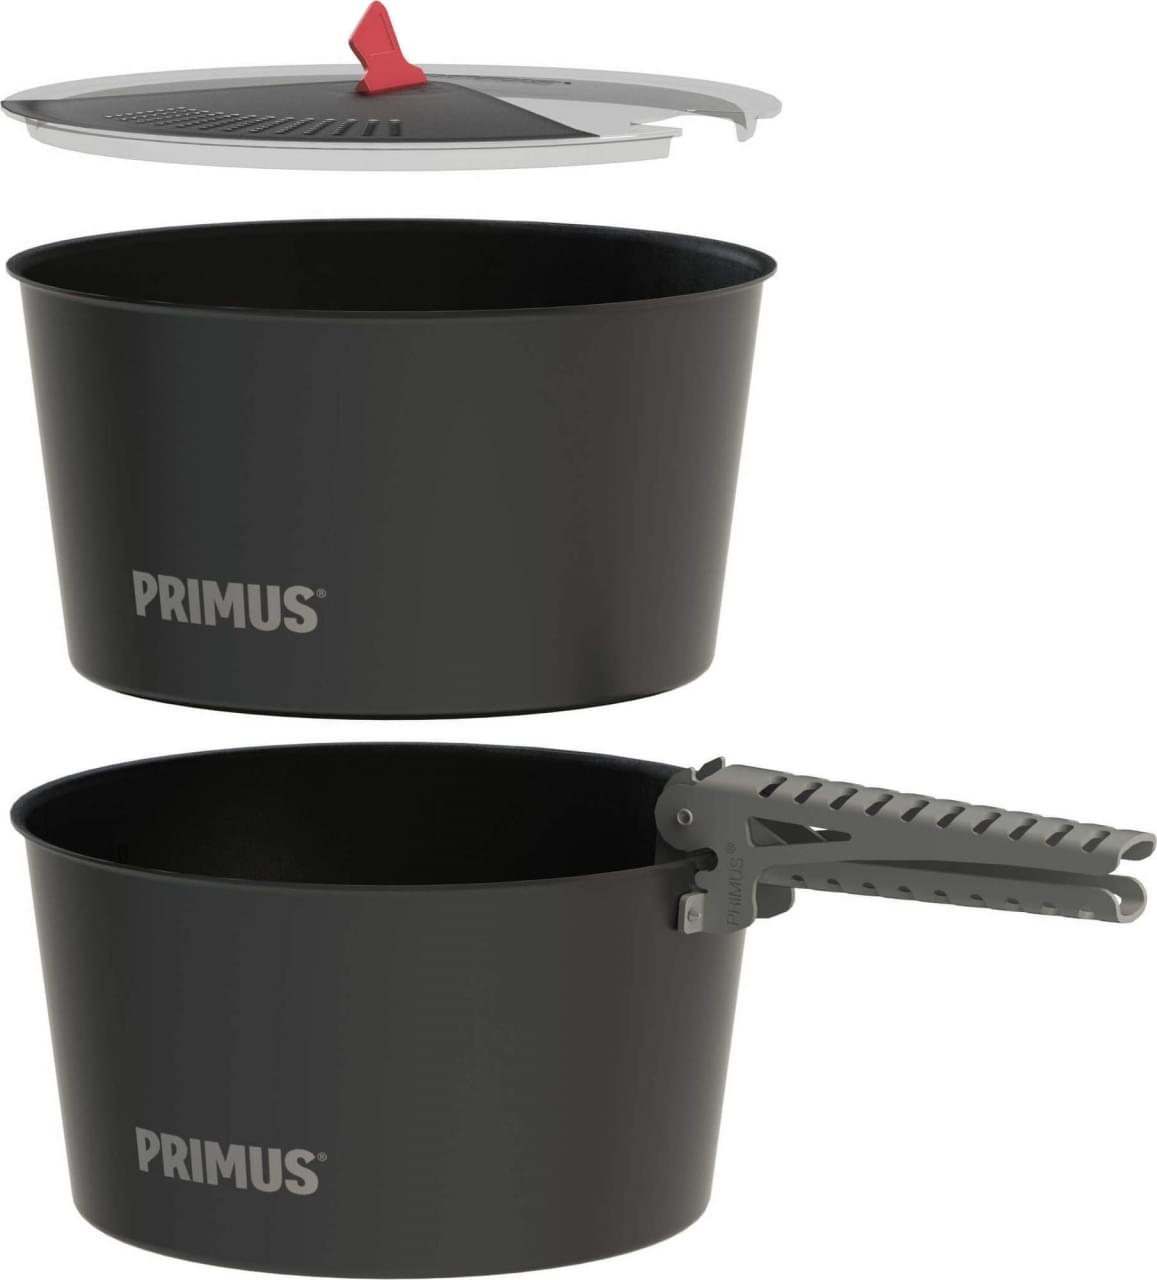 Primus LiTech Pot Set 2.3L Pannenset